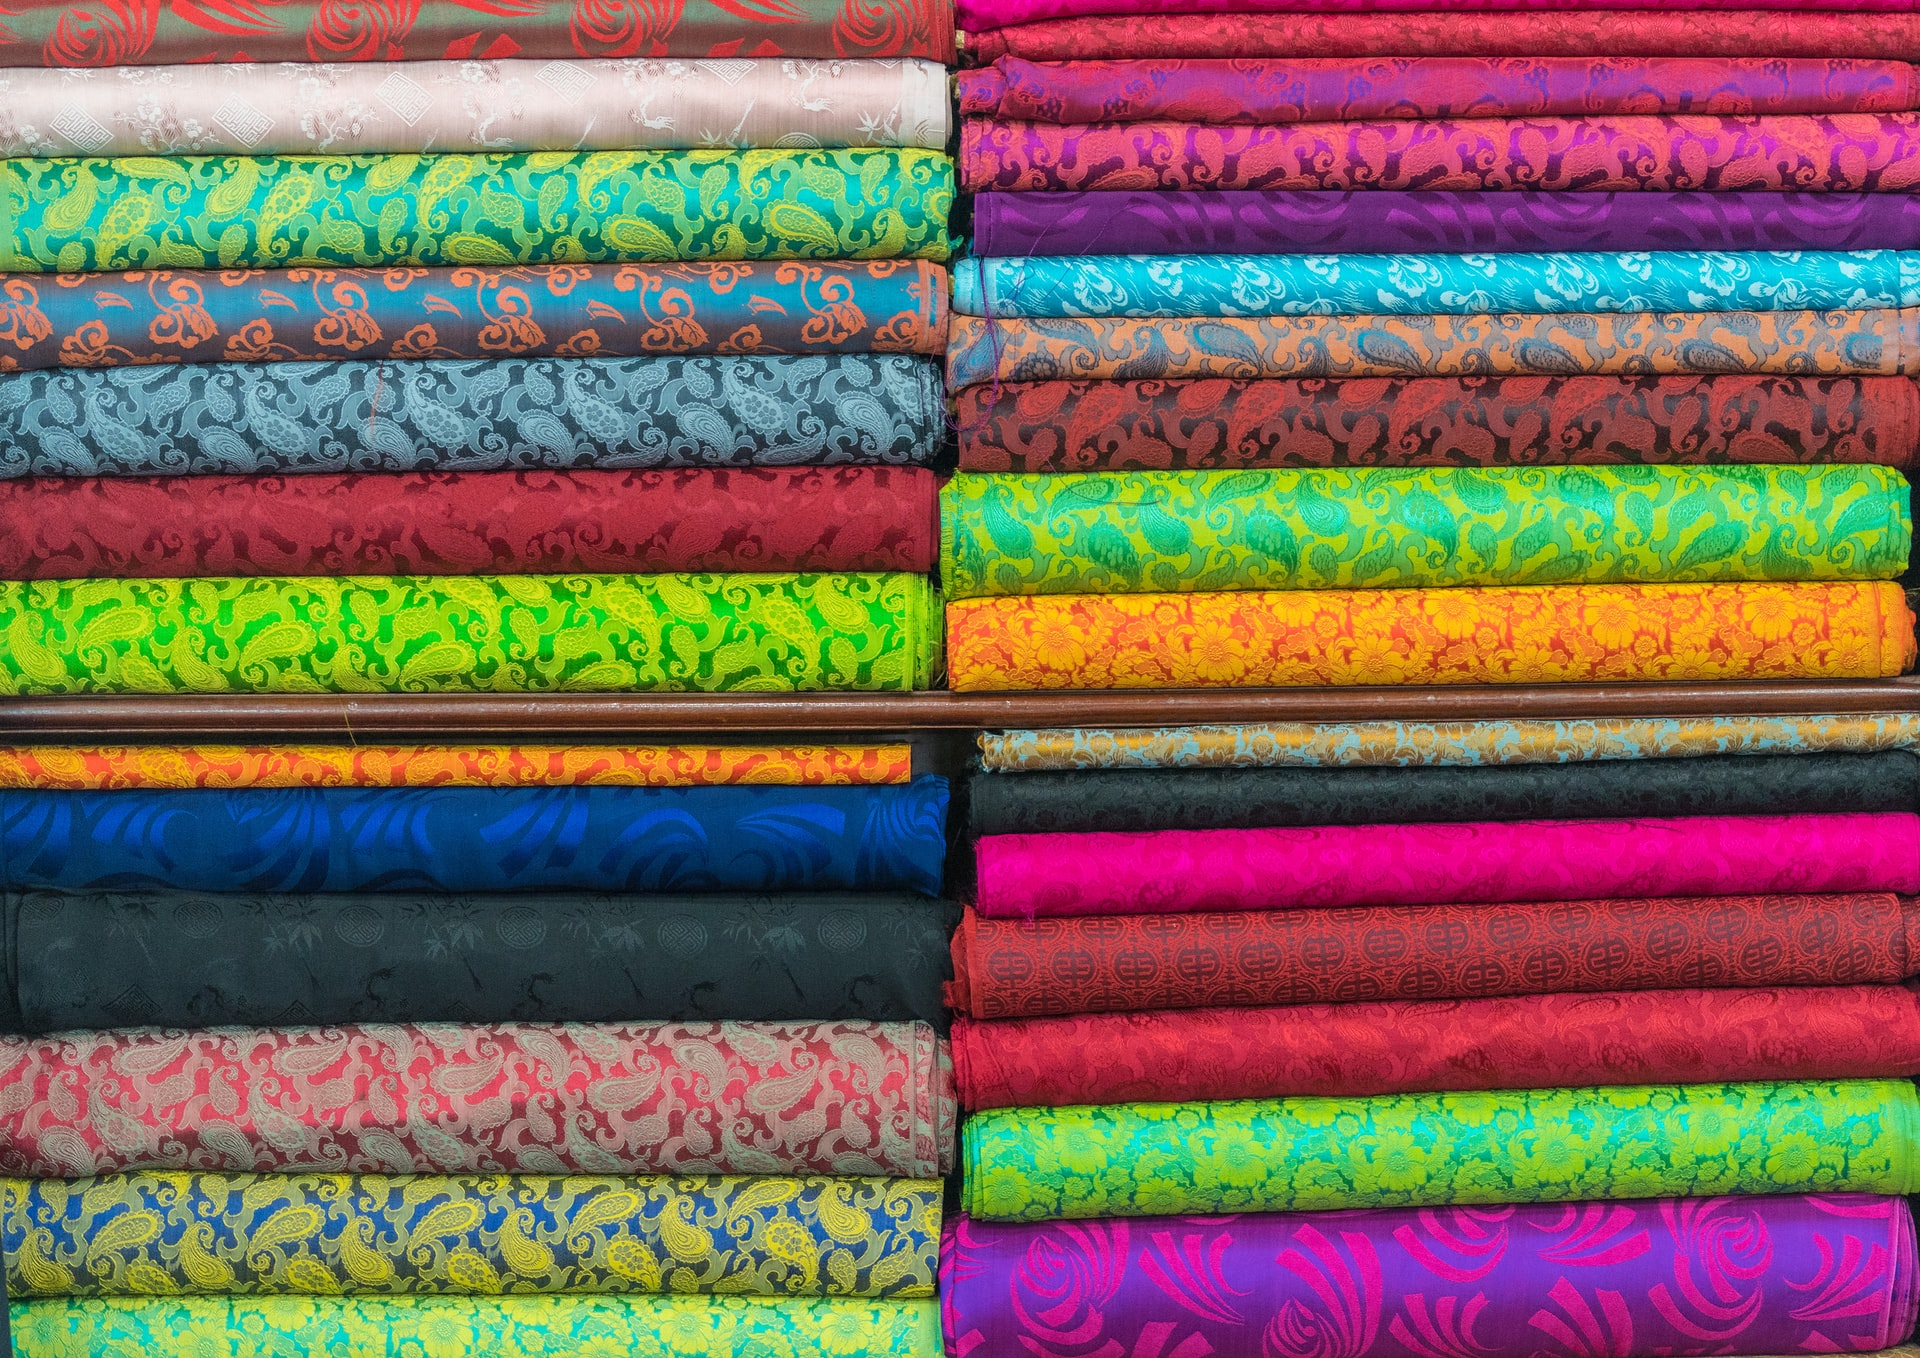 sustainable fashion - two piles of brightly-coloured fabric